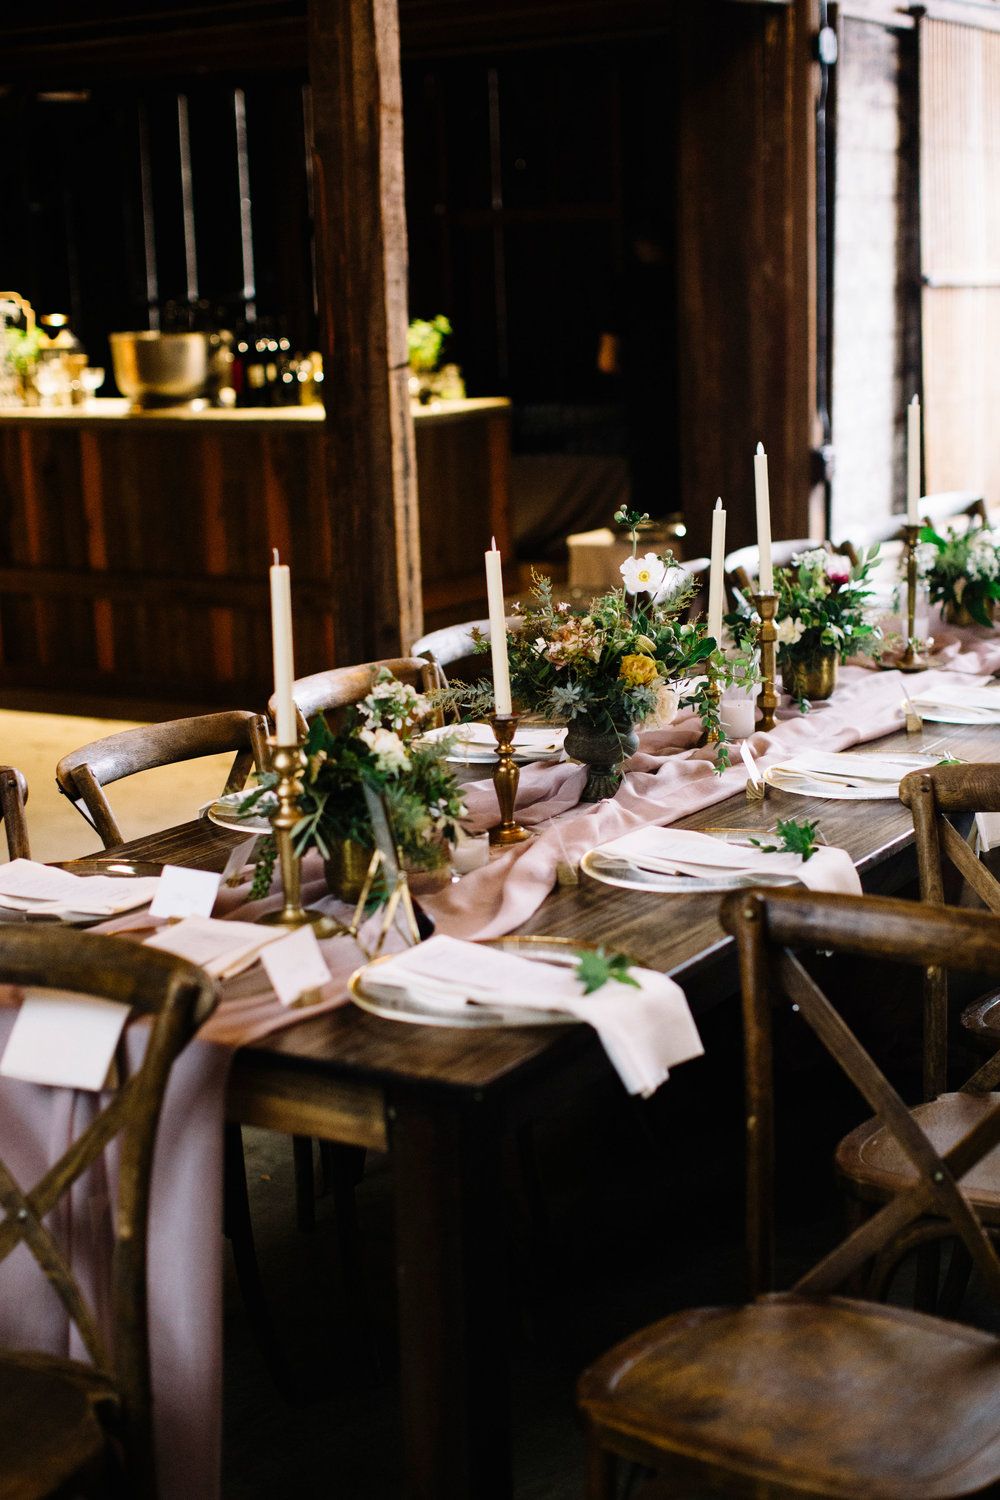 Antique wedding inspiration with lush and natural centerpieces, lots of greenery, and vintage touches by Venn Floral in Sonoma County photographed by Lucille Lawrence